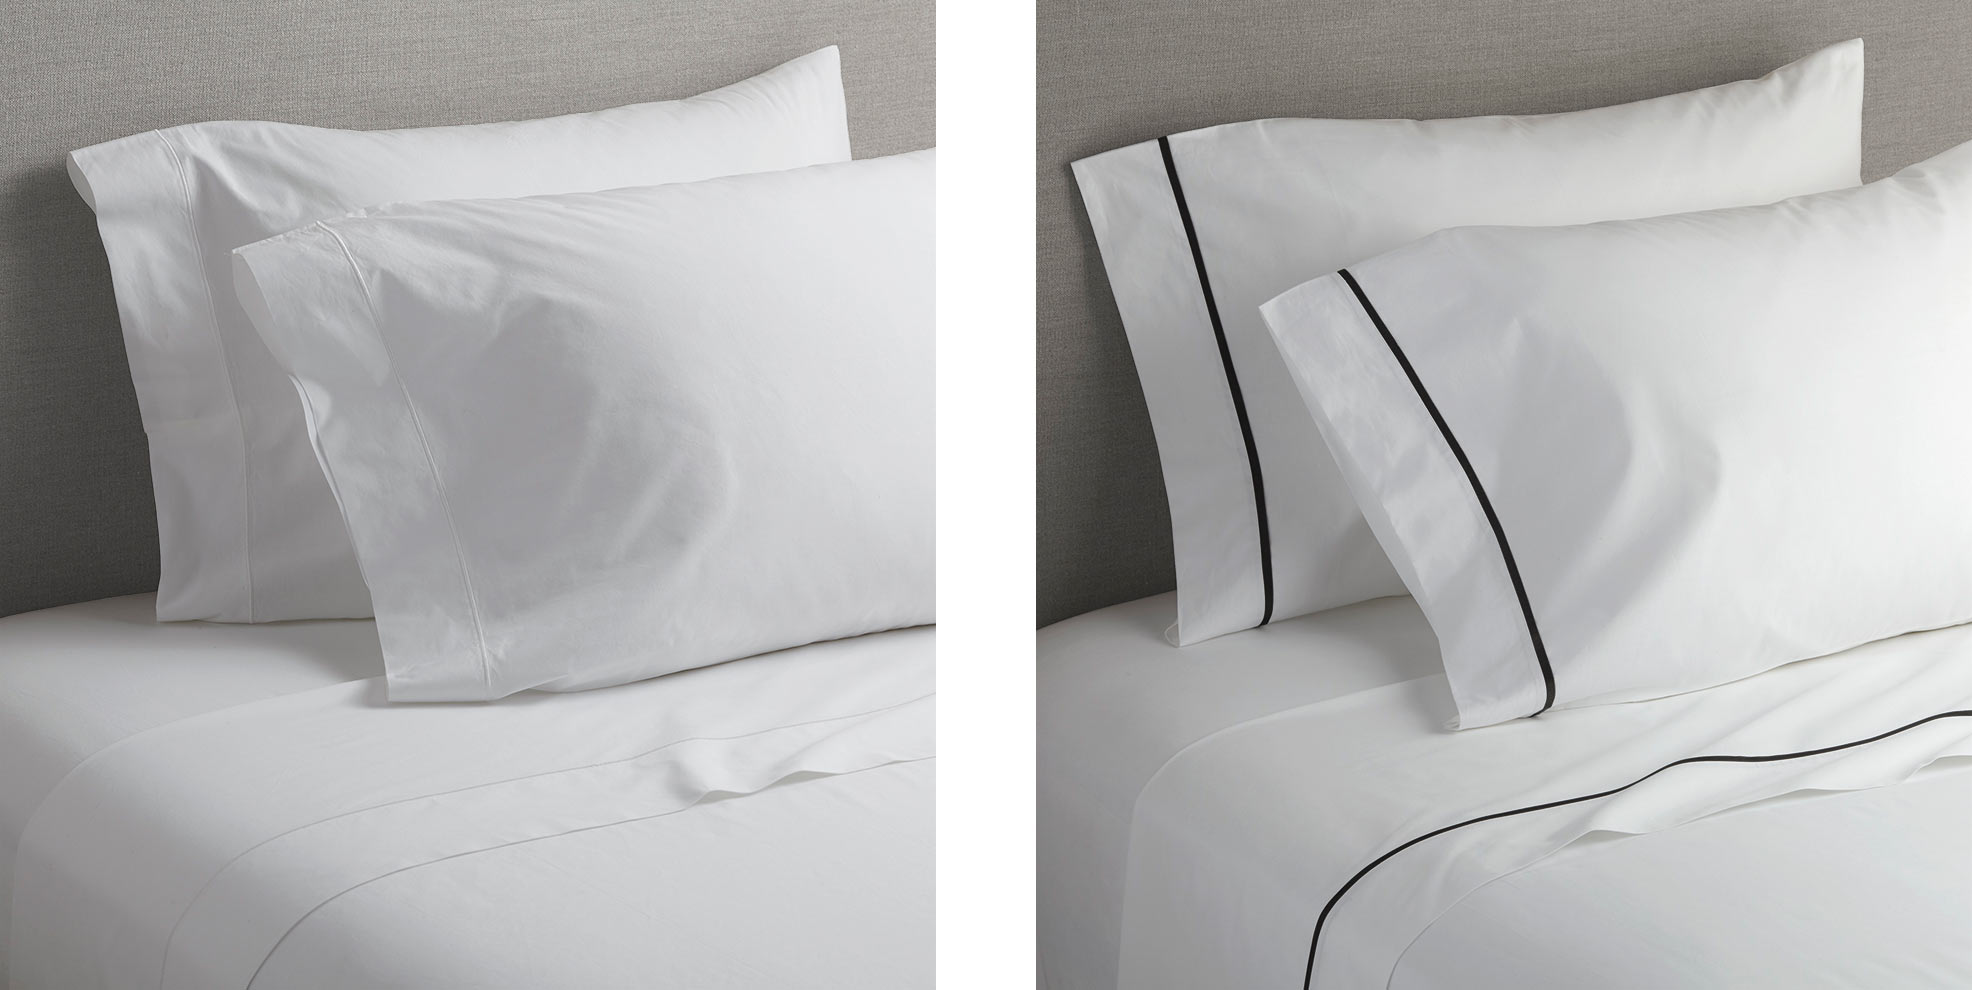 Why Choose Percale Sheets